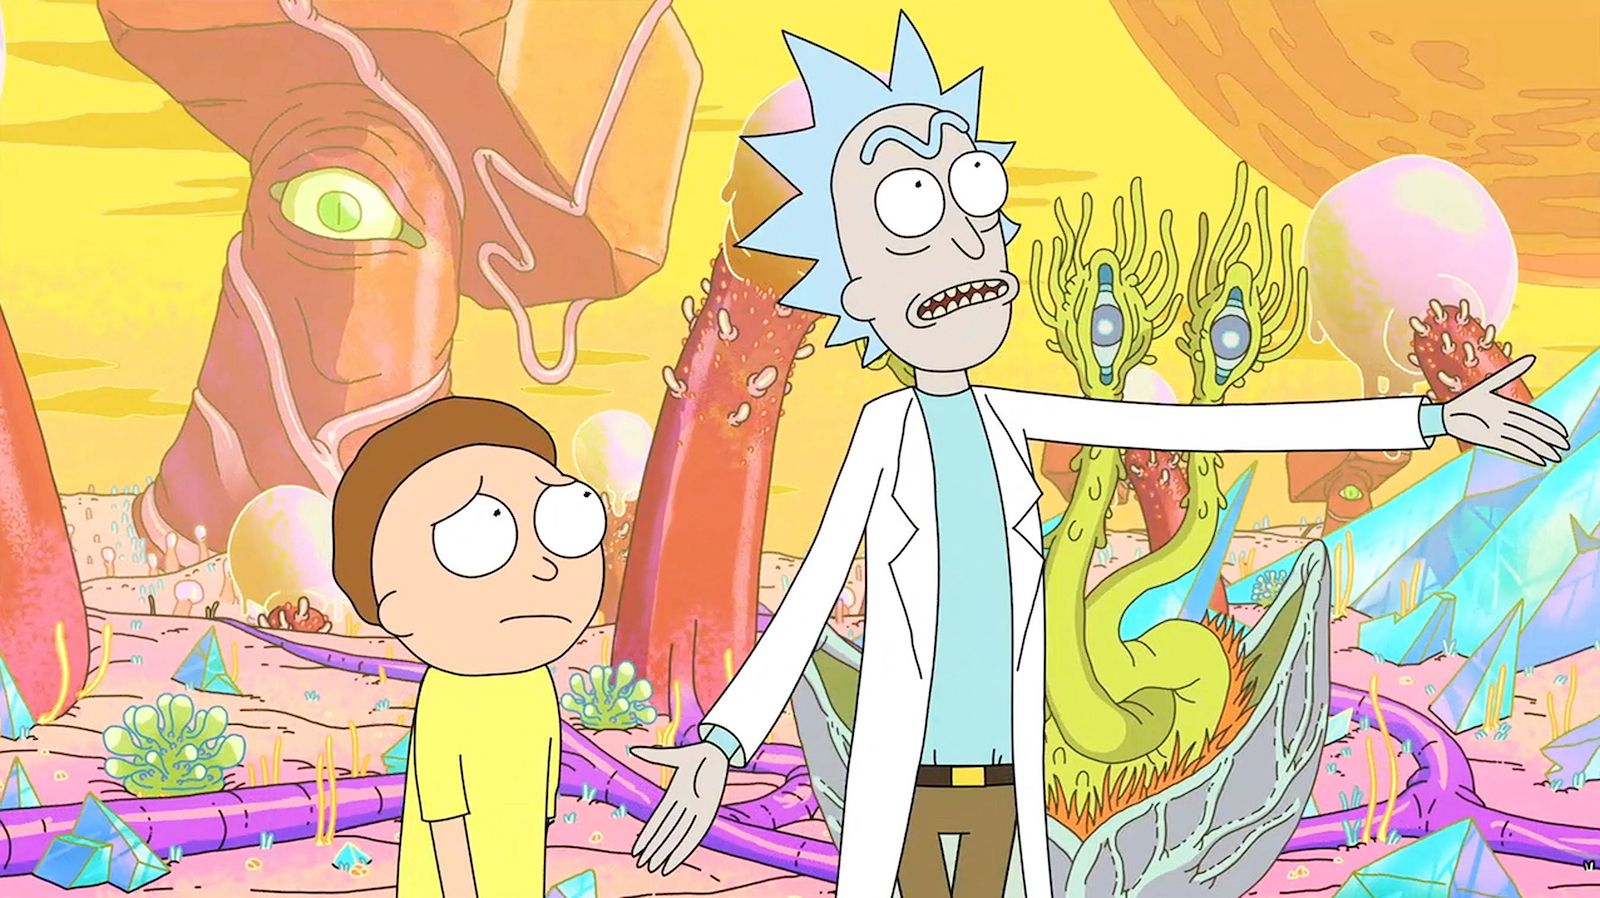 Rick and Morty S04E06 Release Date Confirmed